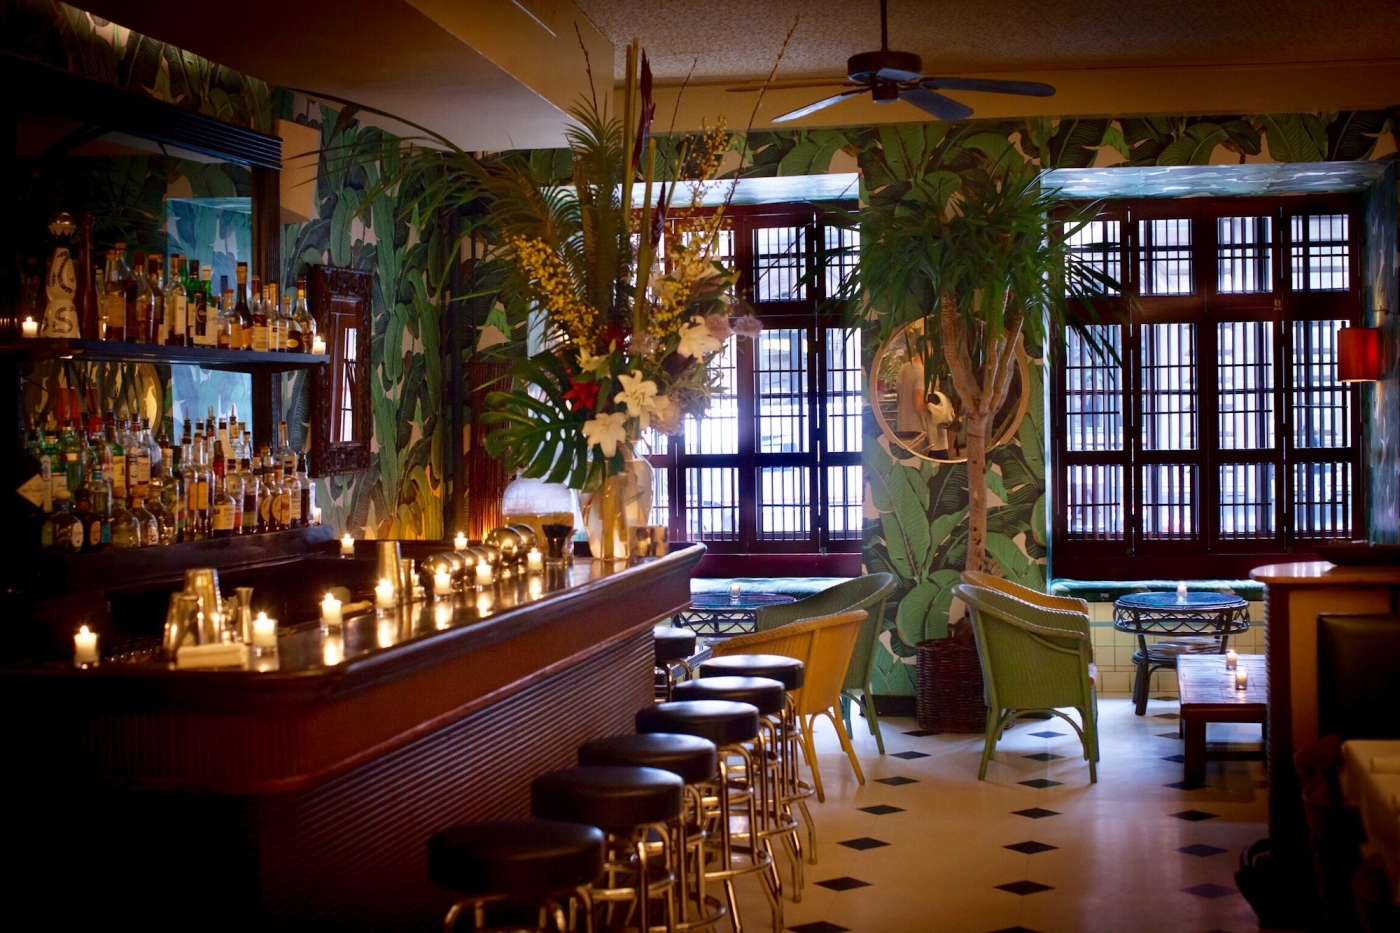 100 New York: 10 Exclusive Design Bars & Restaurants